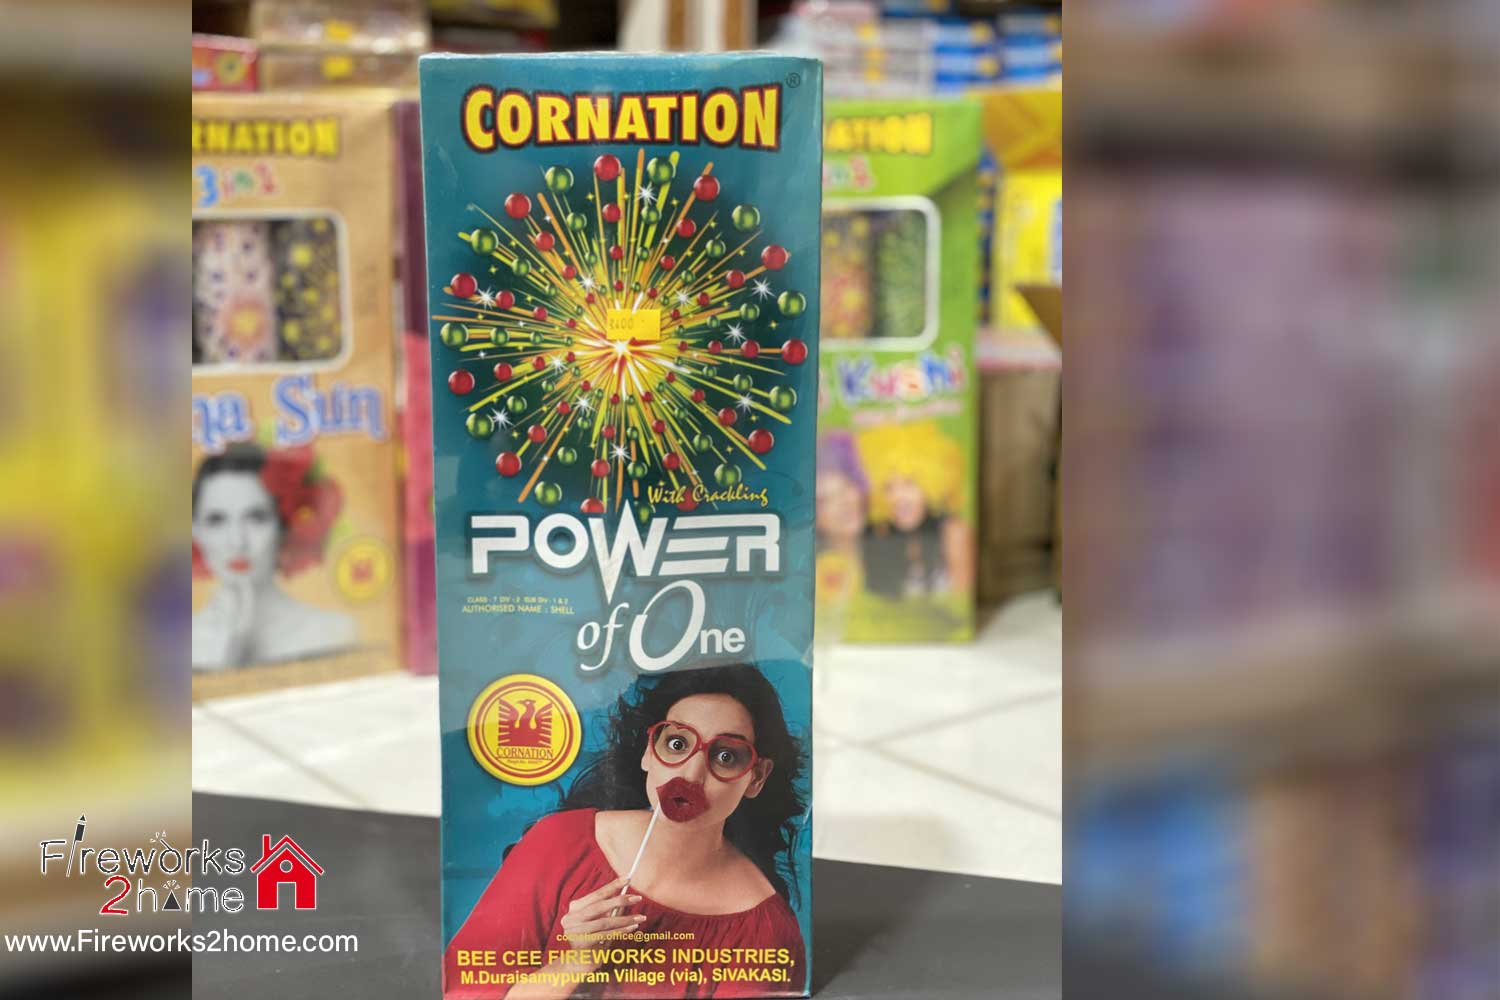 Power of One with Crackling by Coronation